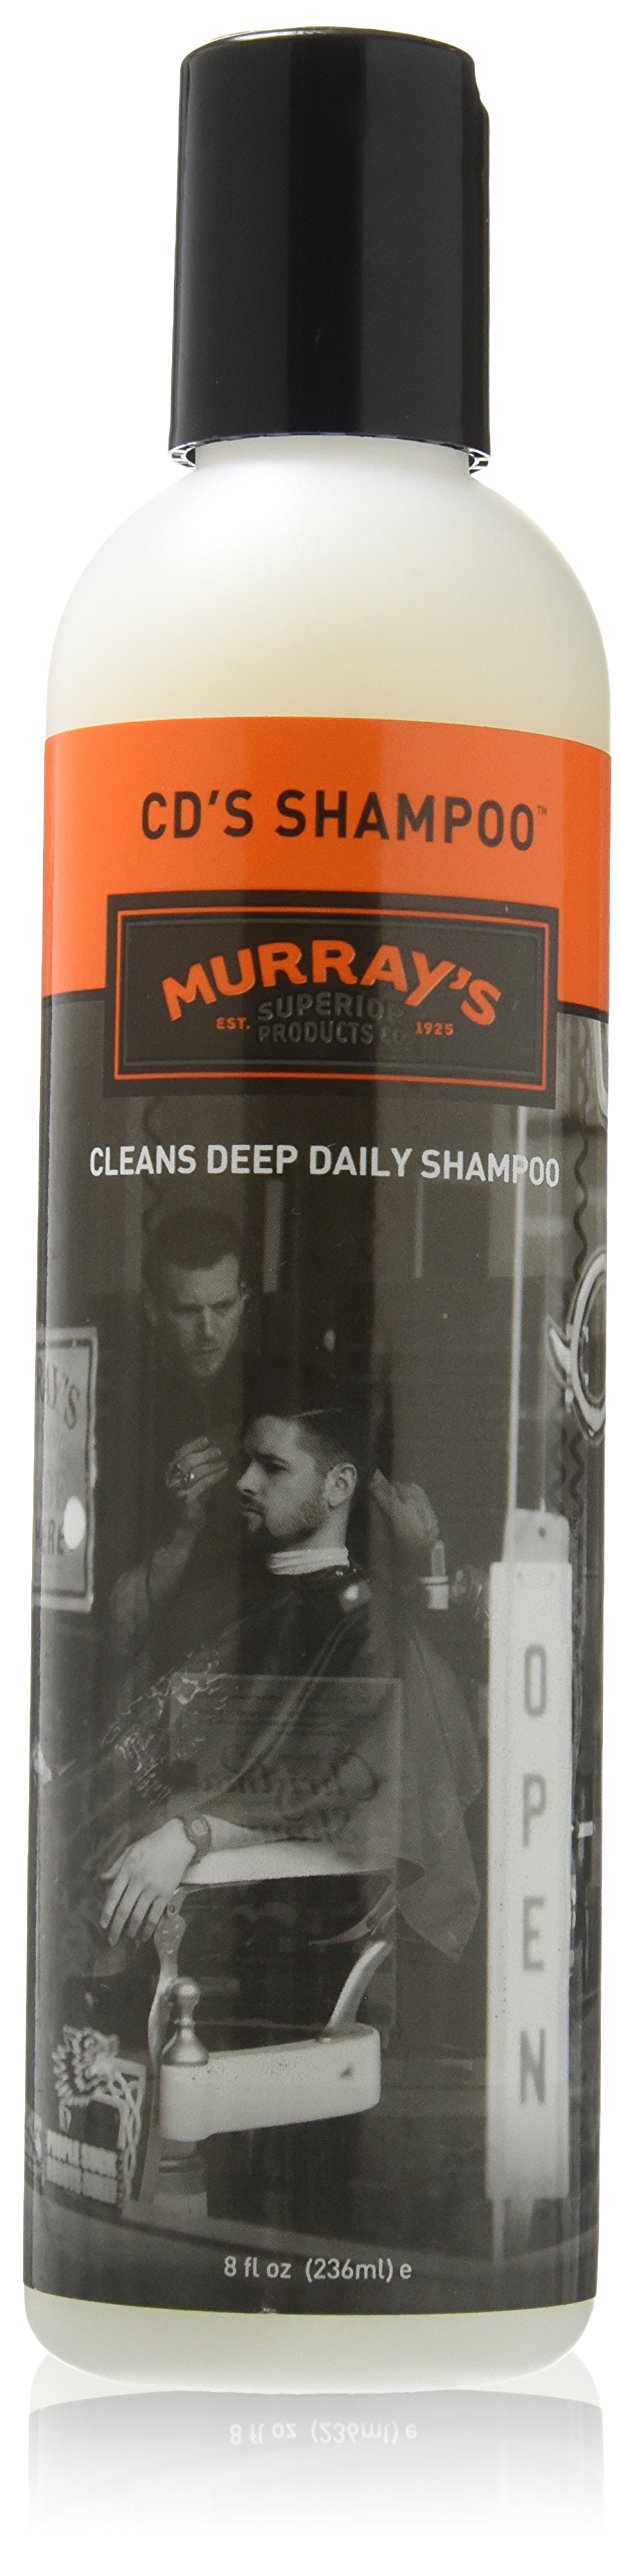 Murray S cleans Deep Daily Shampoo